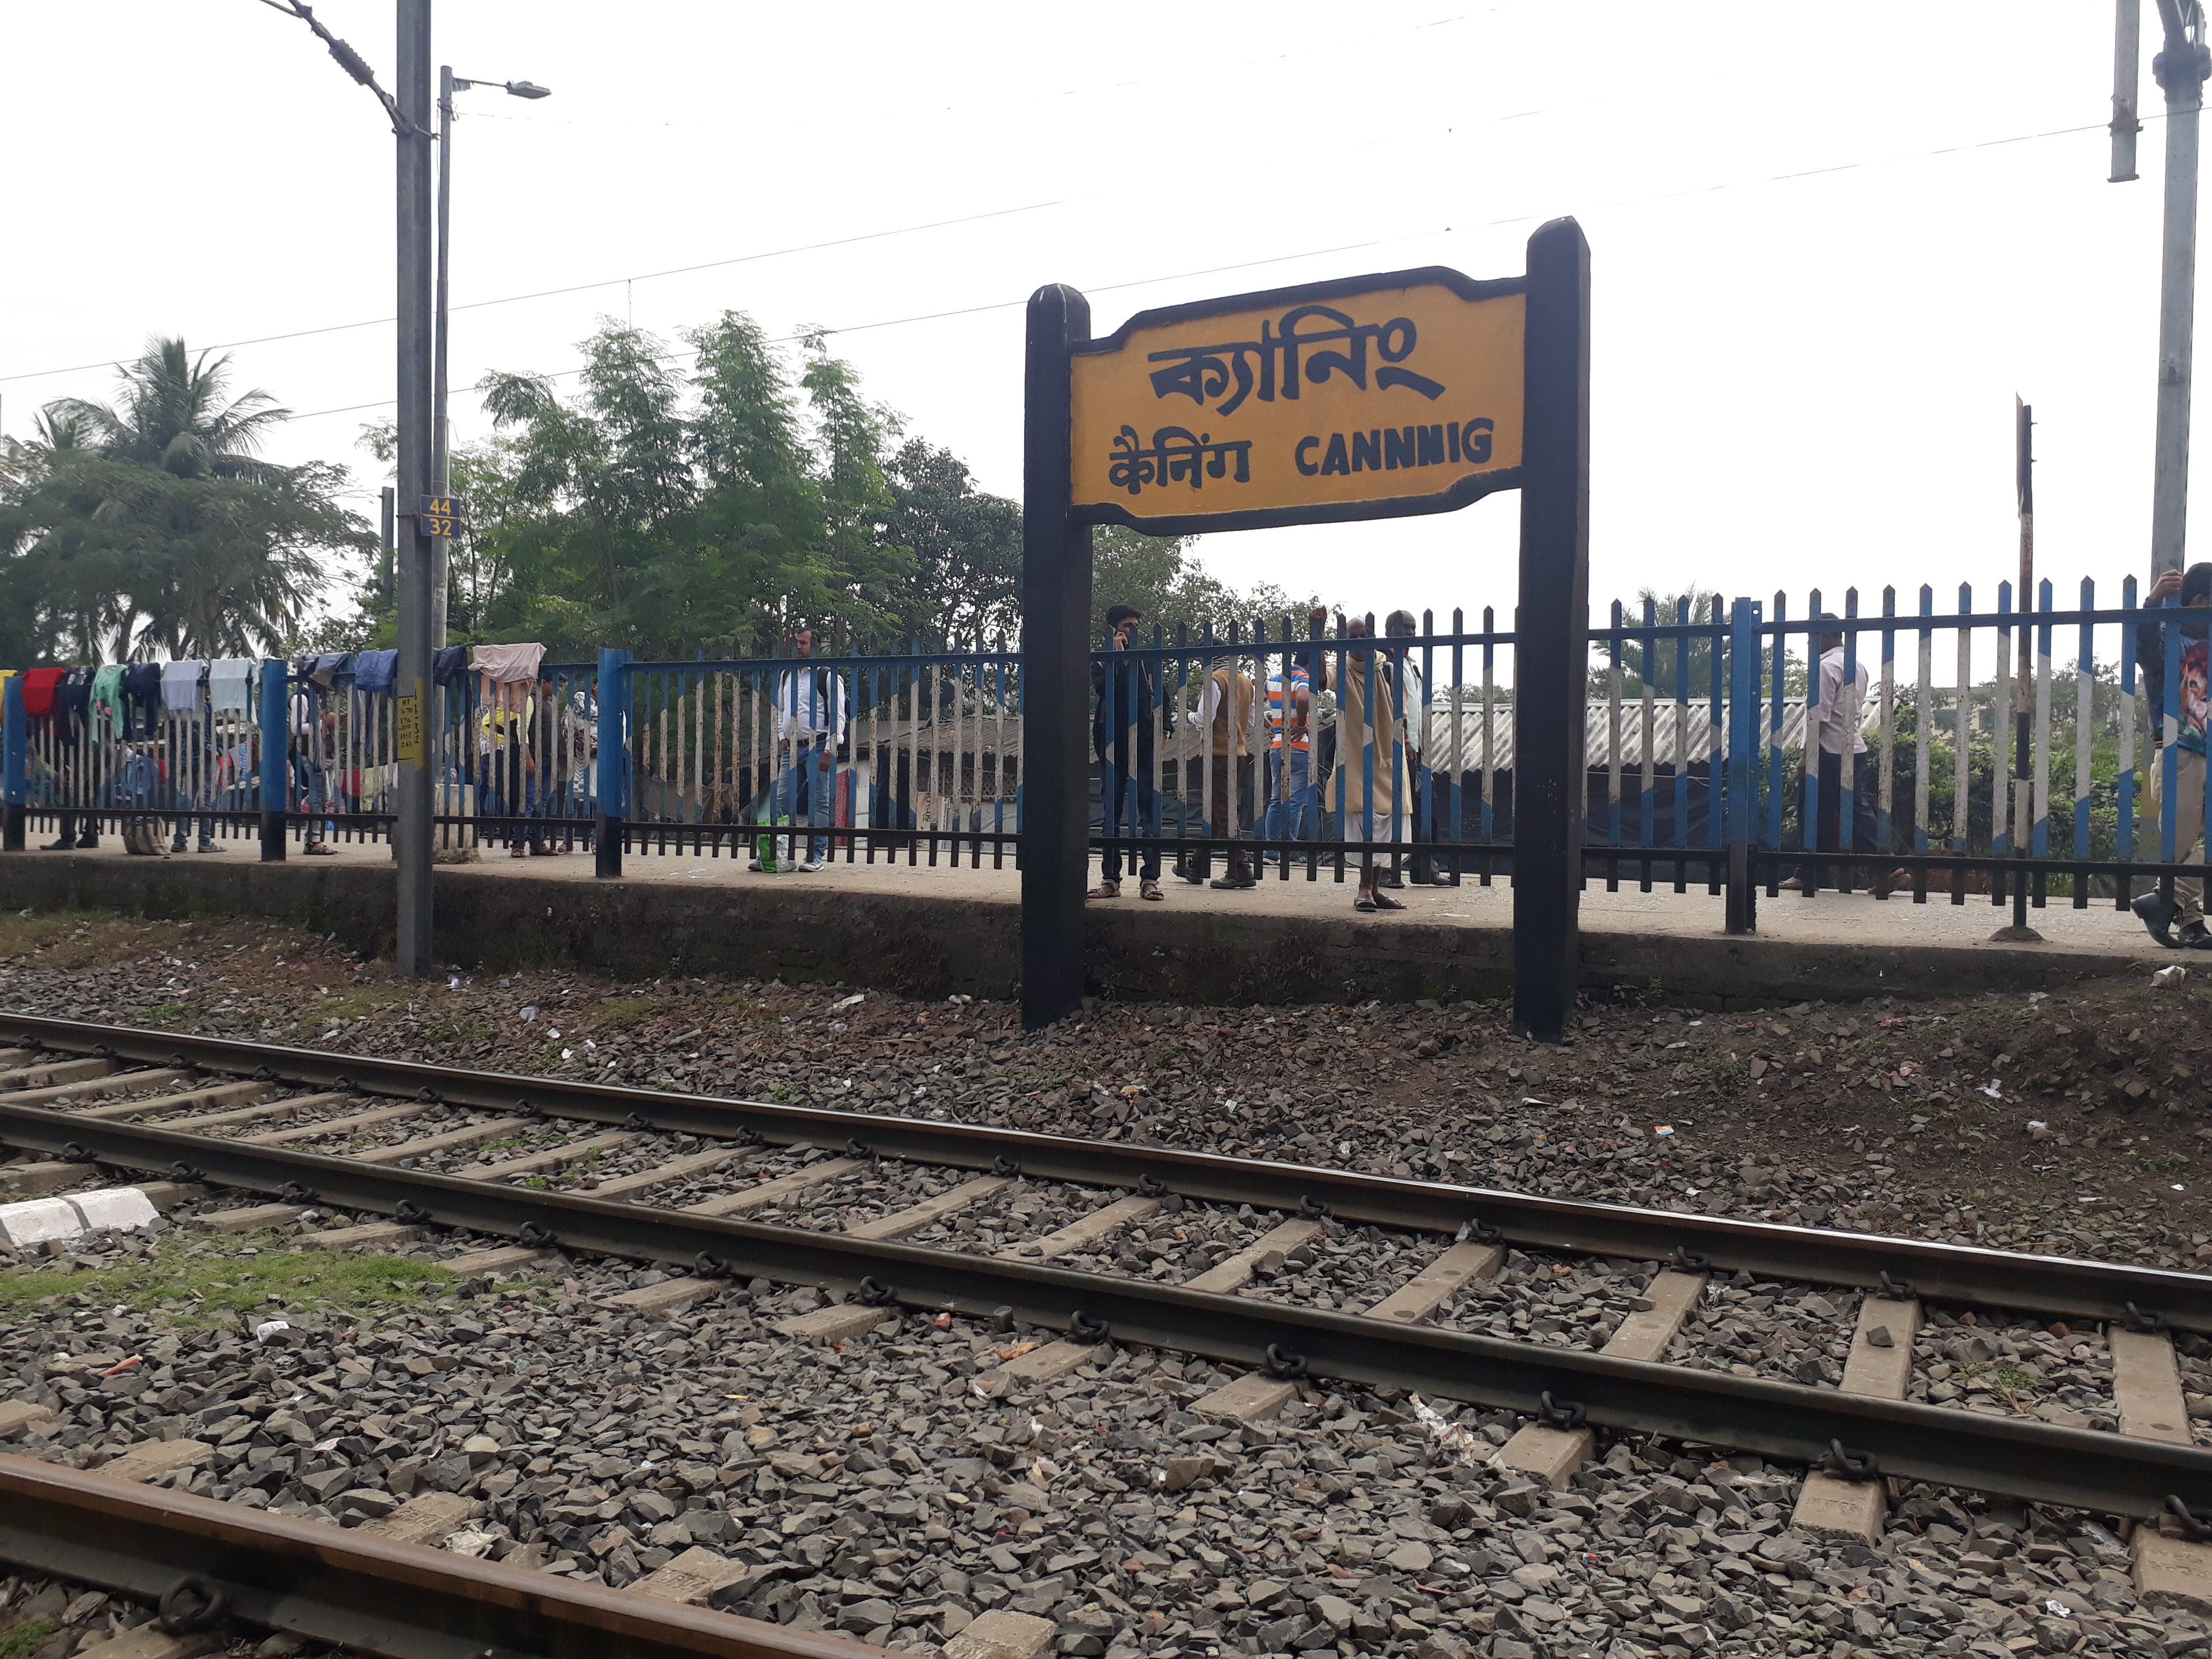 Canning, South 24 Parganas - Wikipedia